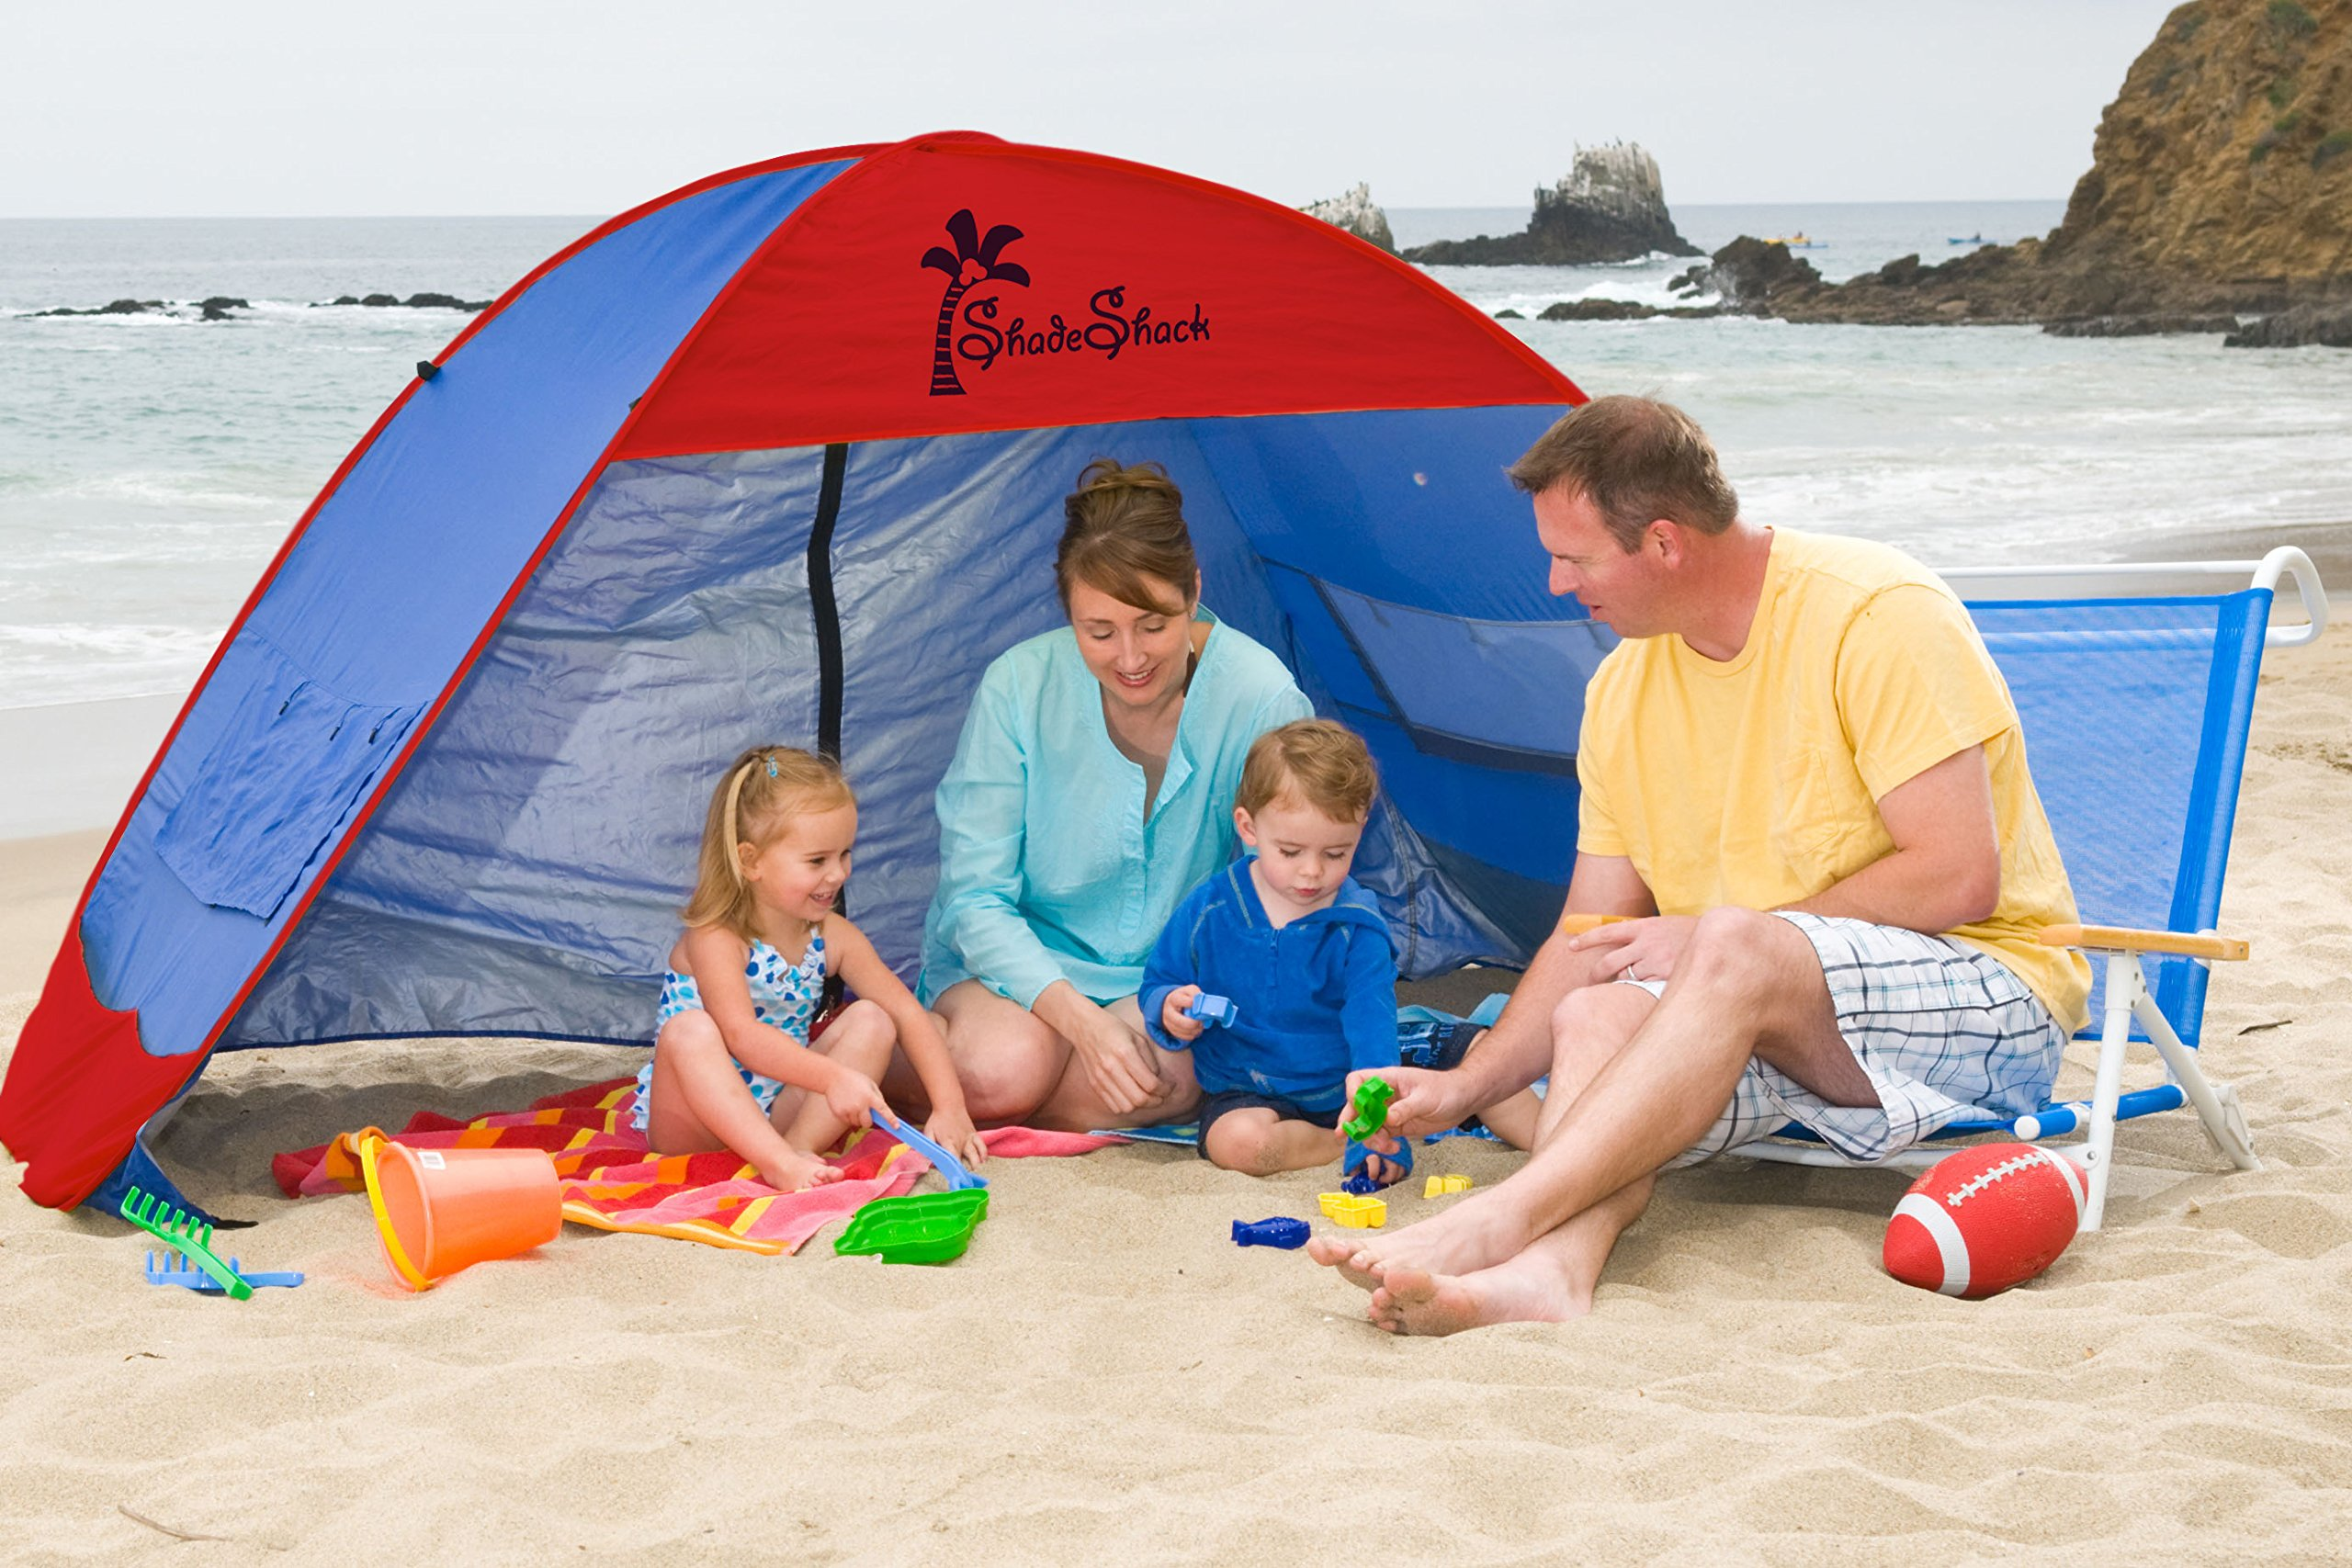 Shade Shack Beach Tent Easy Automatic Instant Pop Up Camping Sun Shelter - Blue/RED - Extra Large by Shade Shack